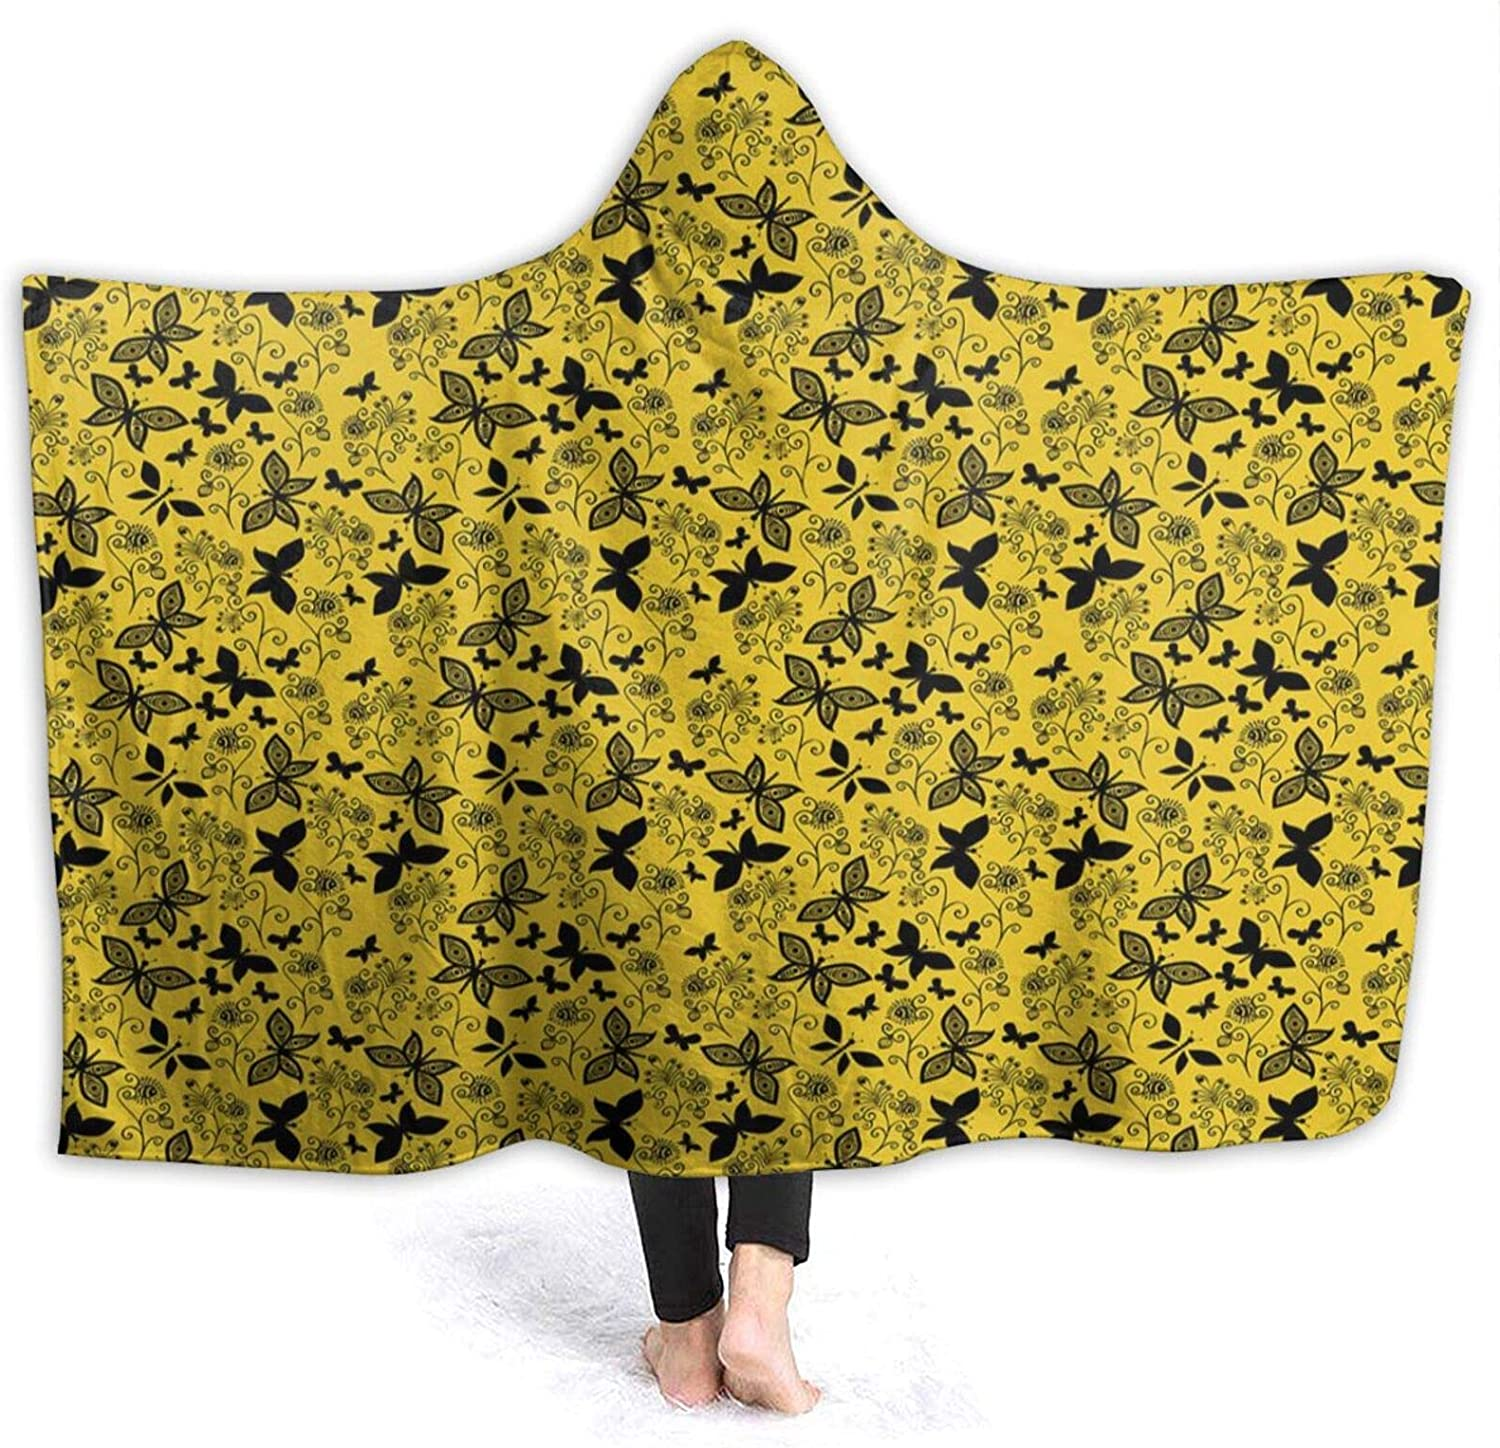 Hooded Blanket El New products, world's highest quality popular! Paso Mall Anti-Pilling Flannel Monochromatic Abstract Patte